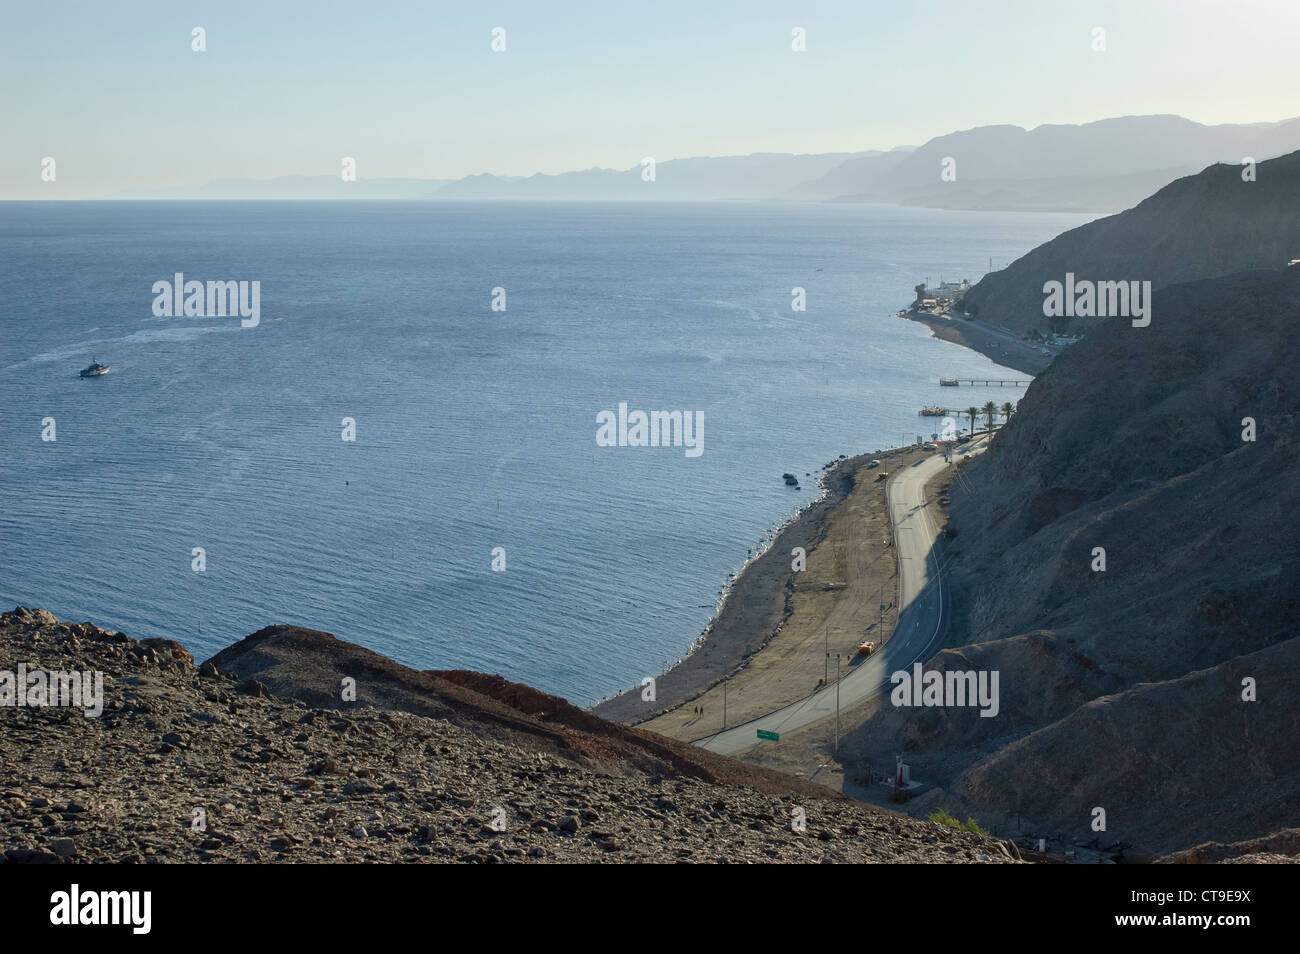 Taba border crossing from the Israeli side - Stock Image